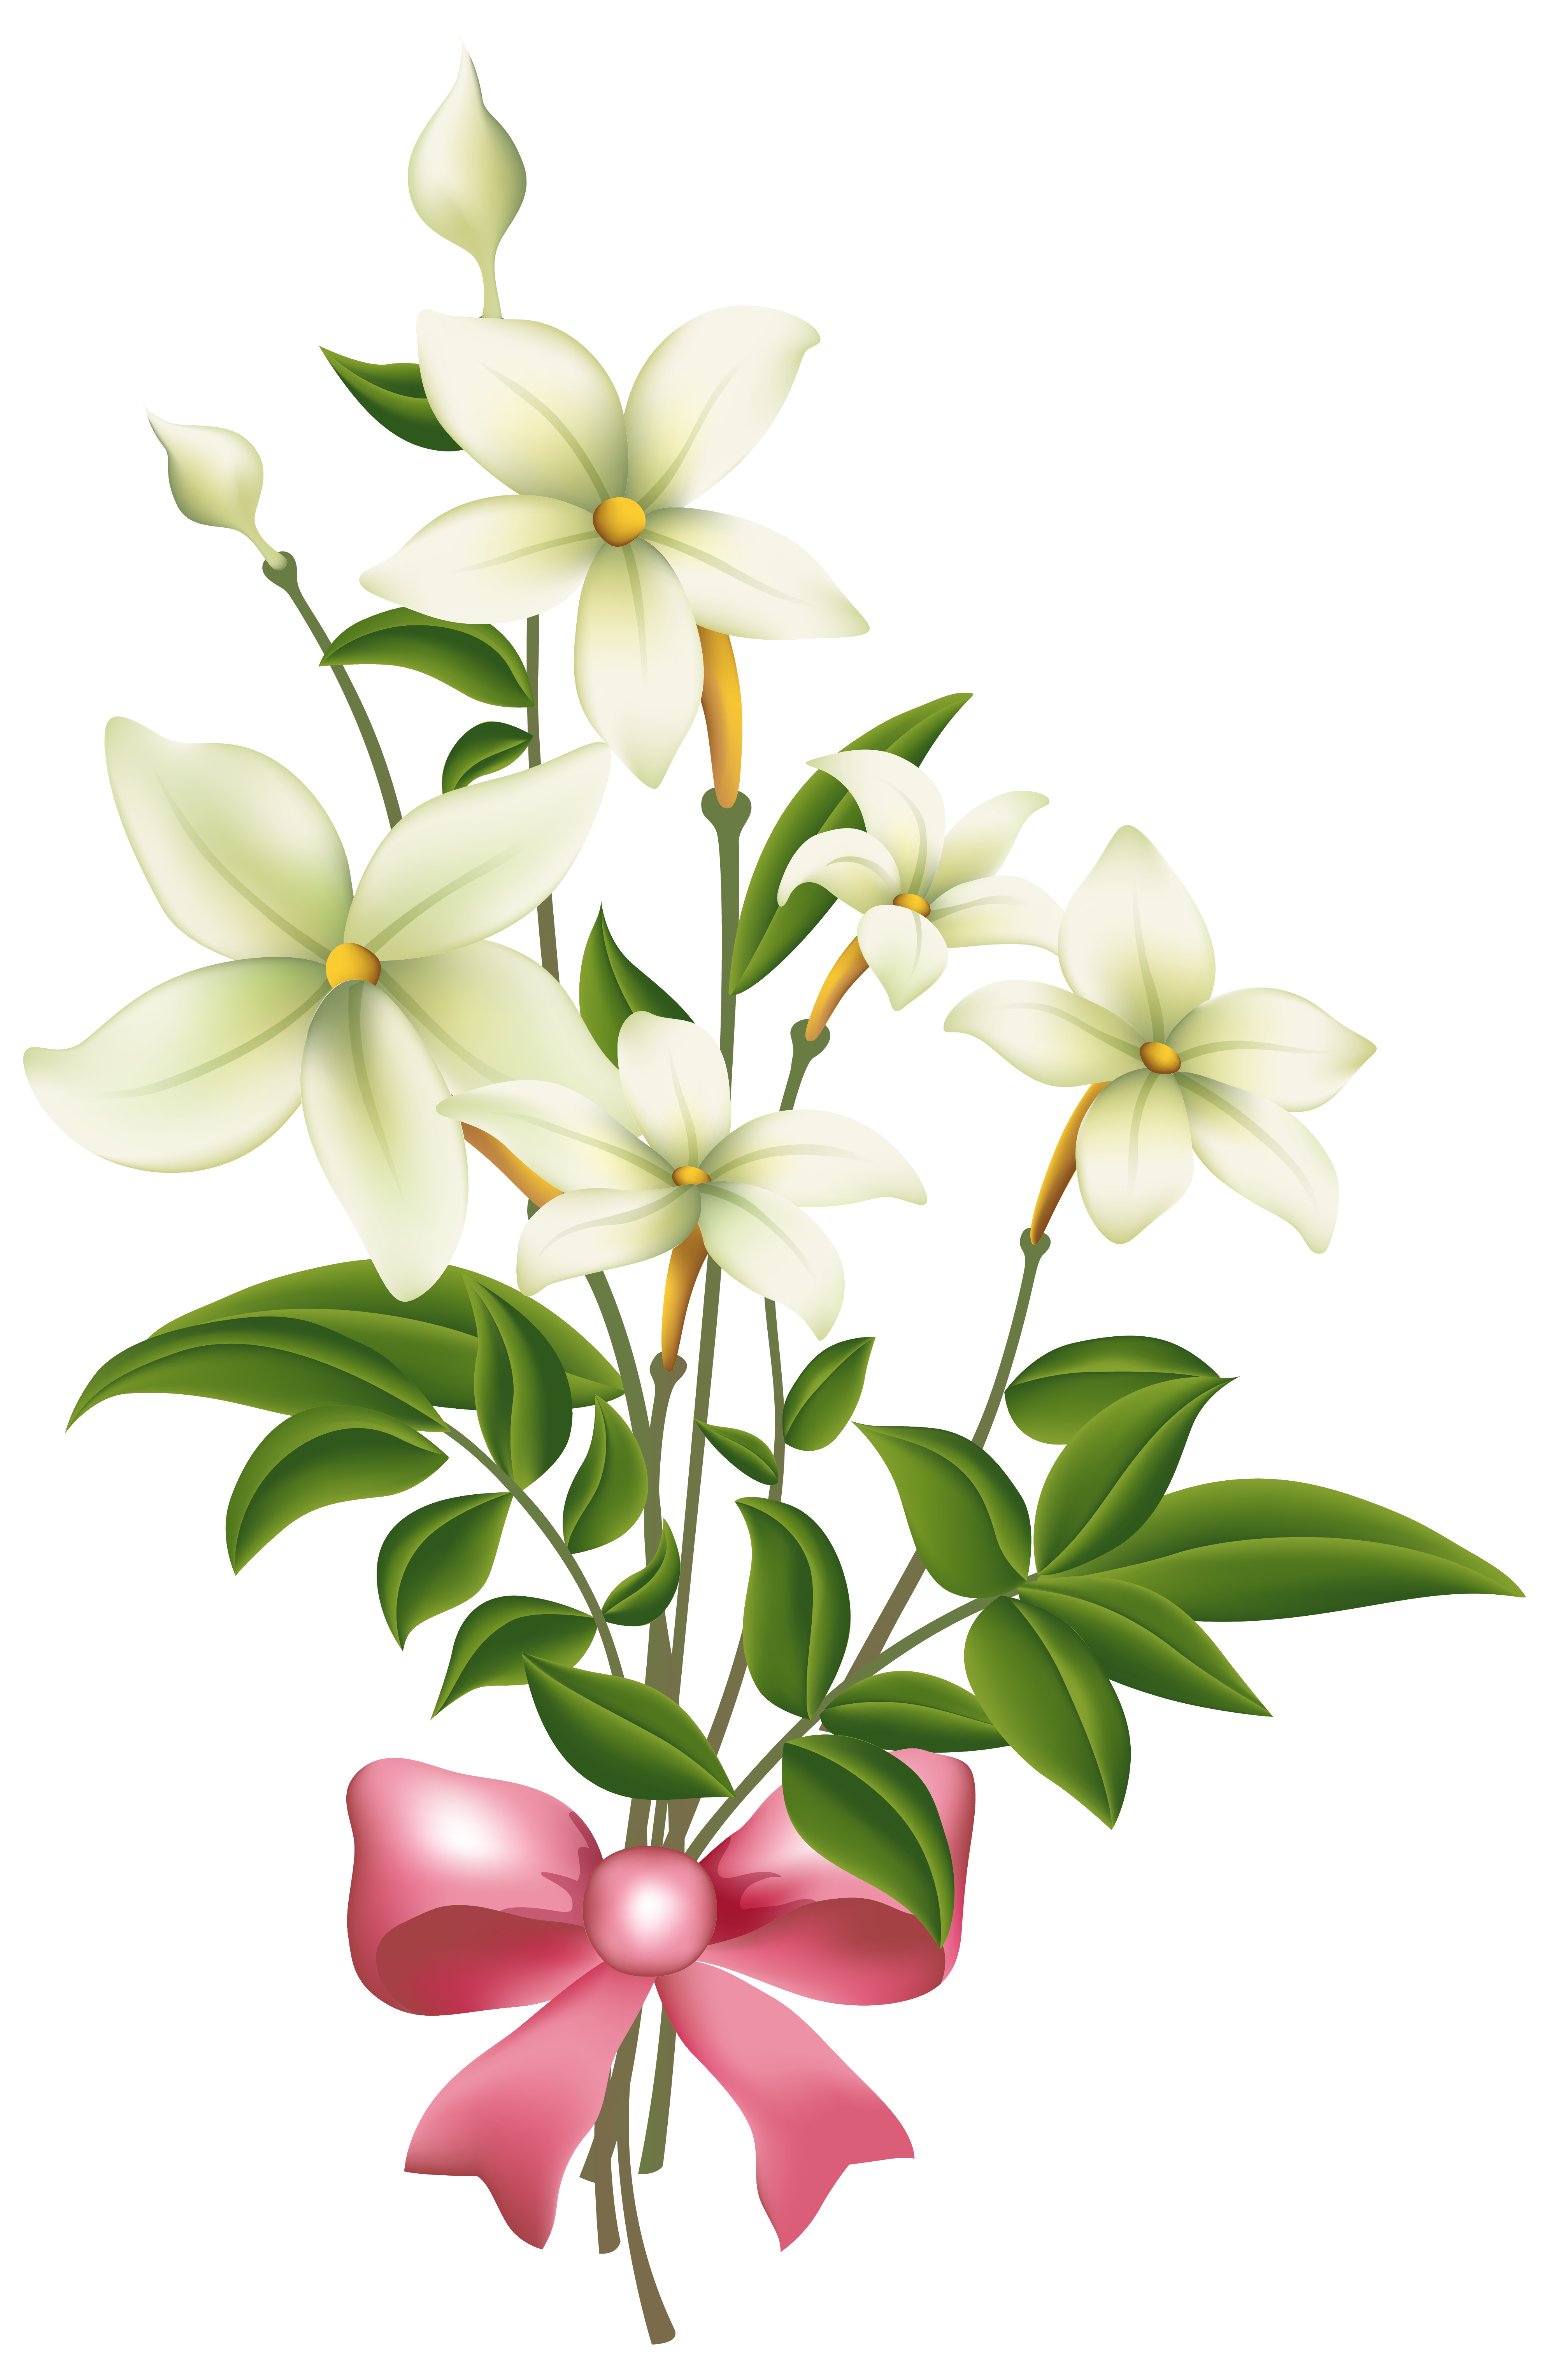 White flowers with pink. Lily clipart blue jasmine